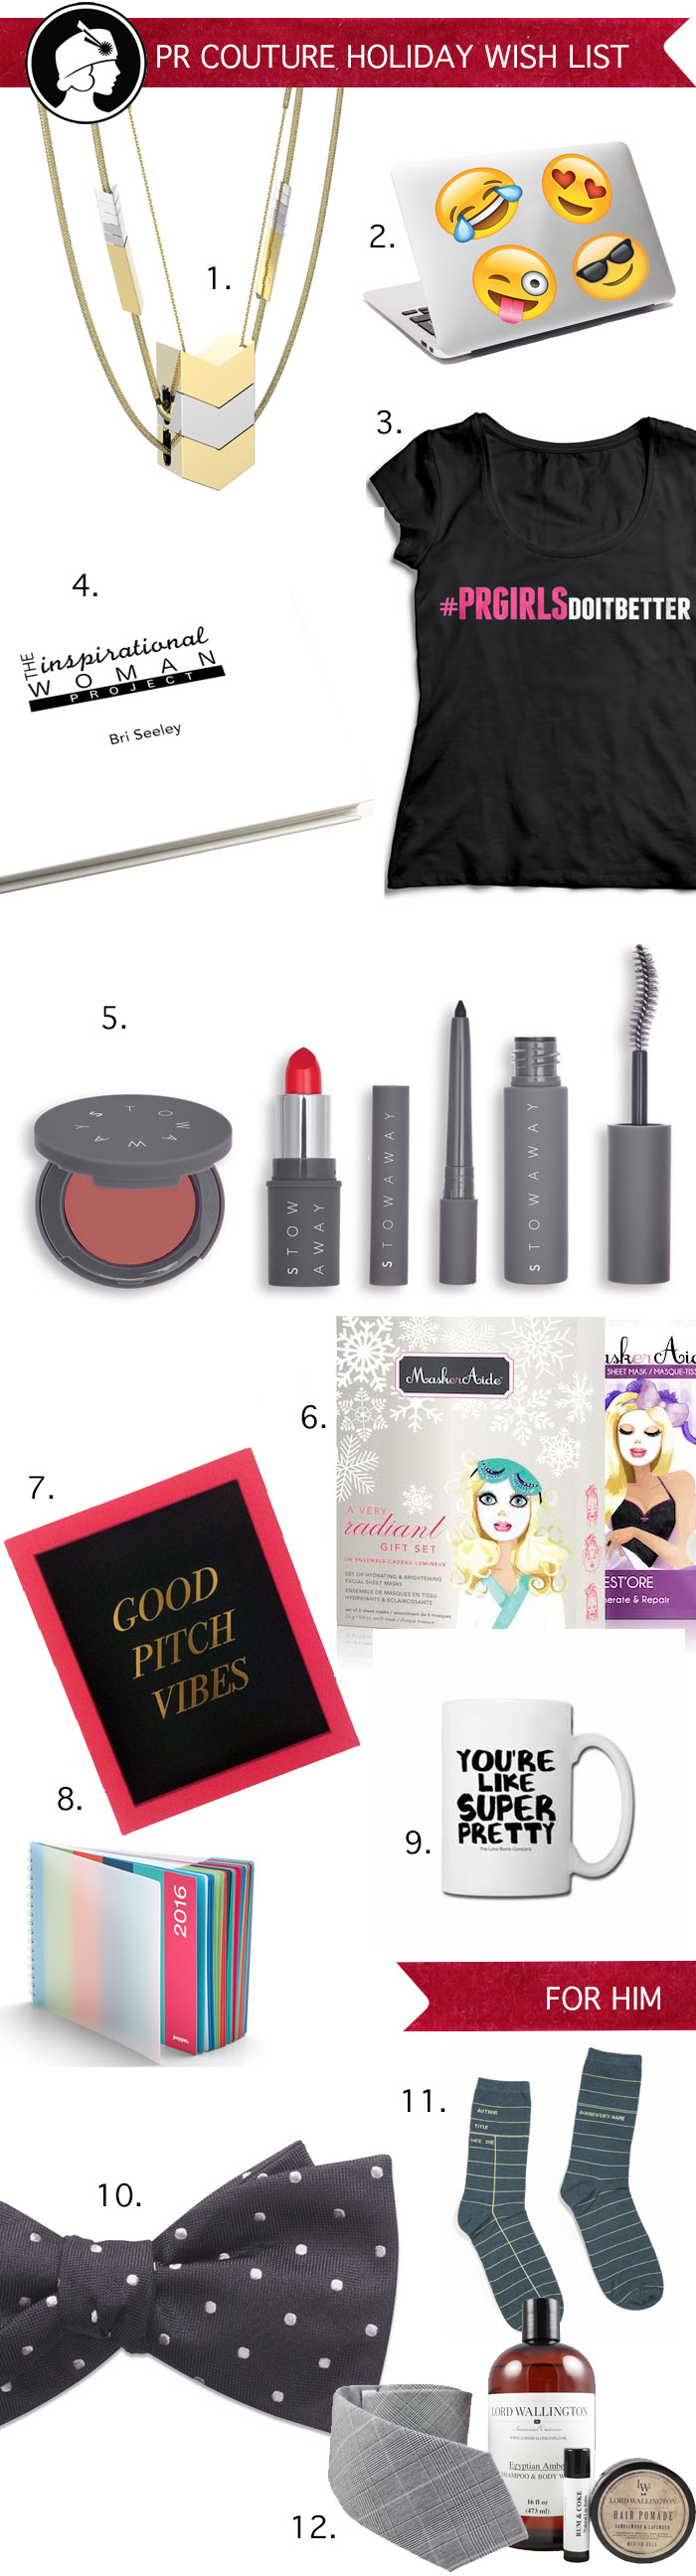 PR Couture Holiday Gift Guide Gifts Ideas for PR Girls and Guys